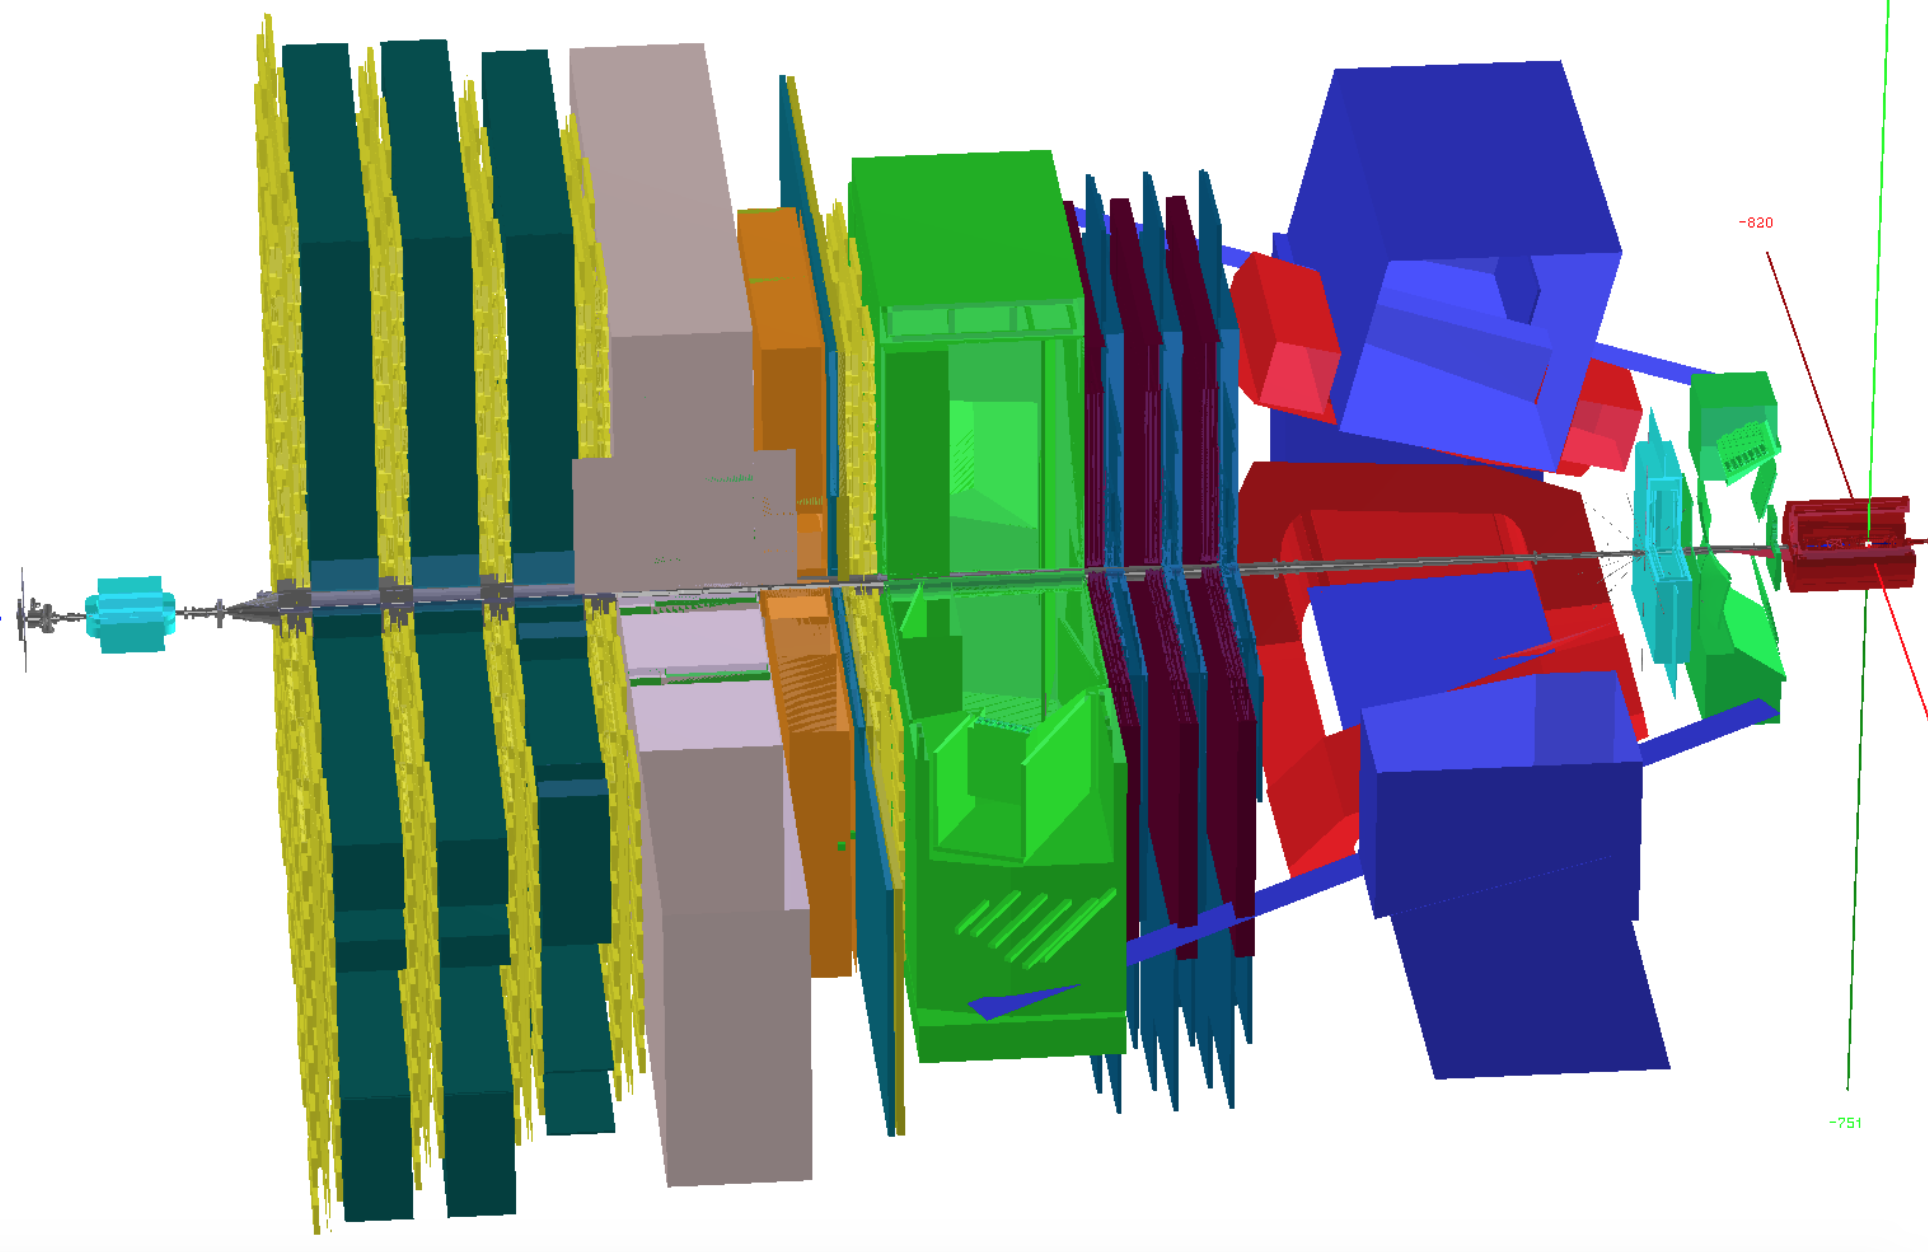 Visualisation of the LHCb detector in DD4hep